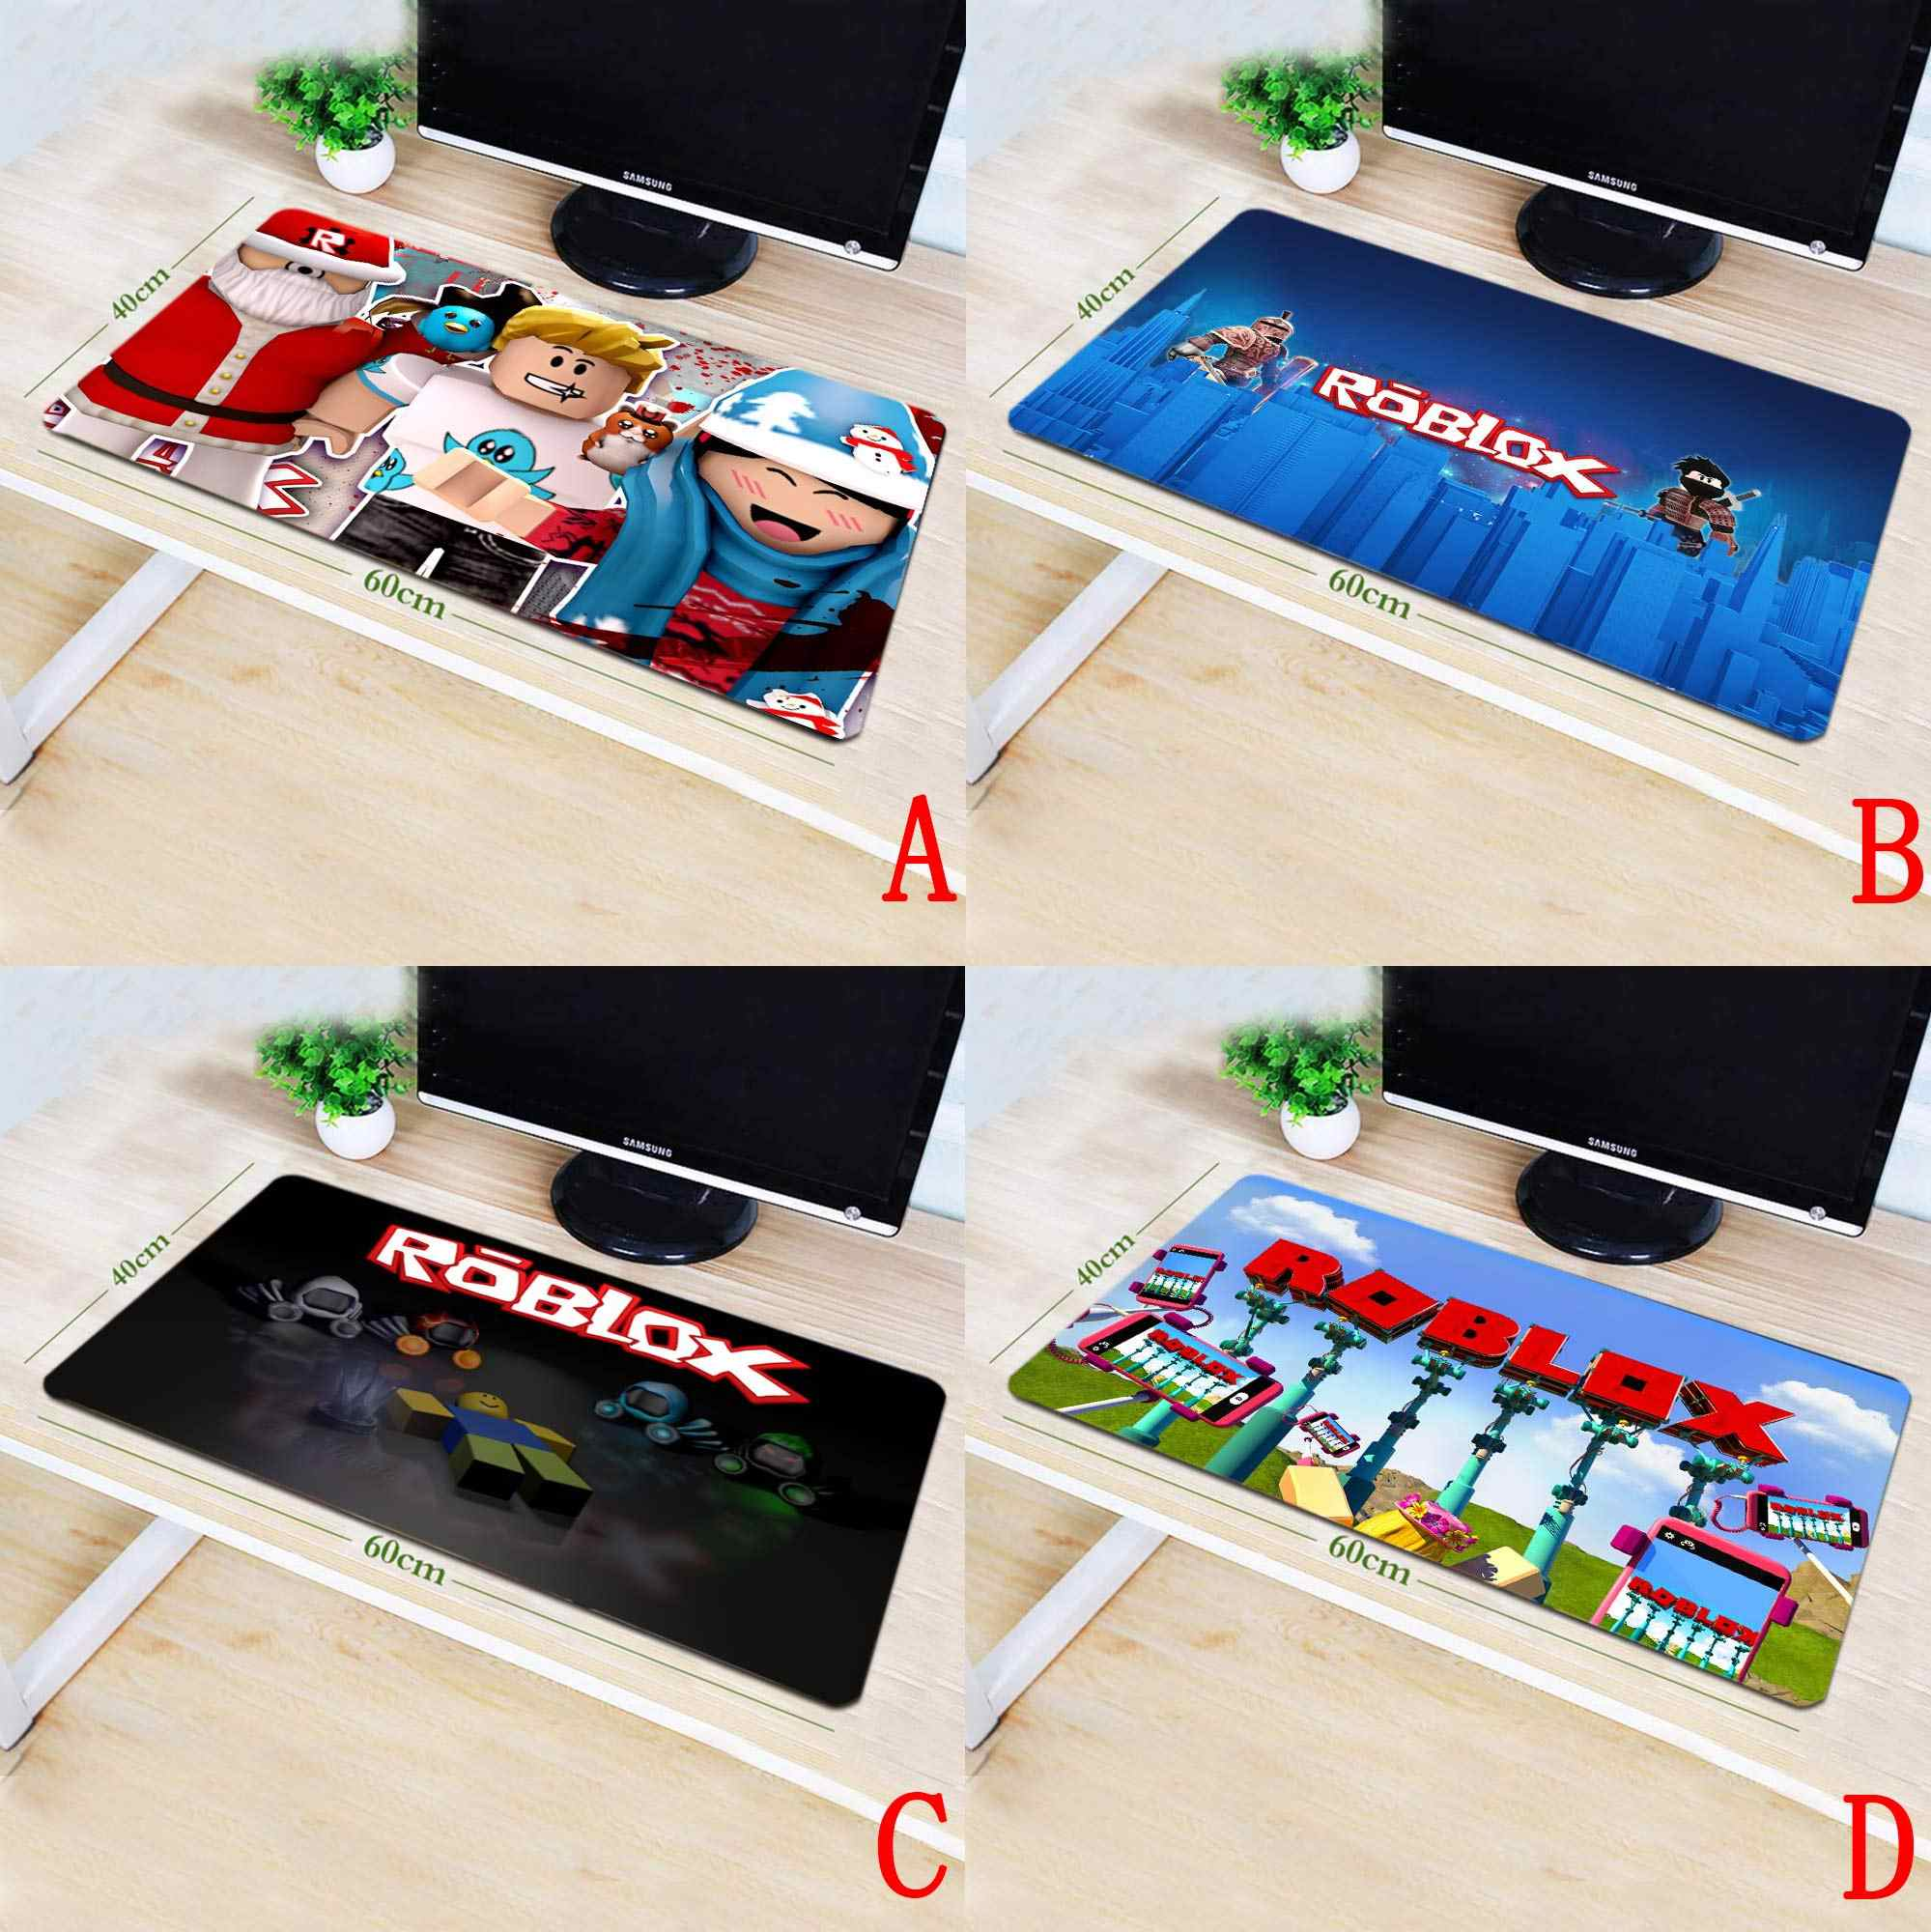 OHCOMICS 40*90cm Game ROBLOX Anti-slip Gaming Mouse Pad Mat Mousepad  Optical Laser Mouse Game Play Costume Accessory Player Gift